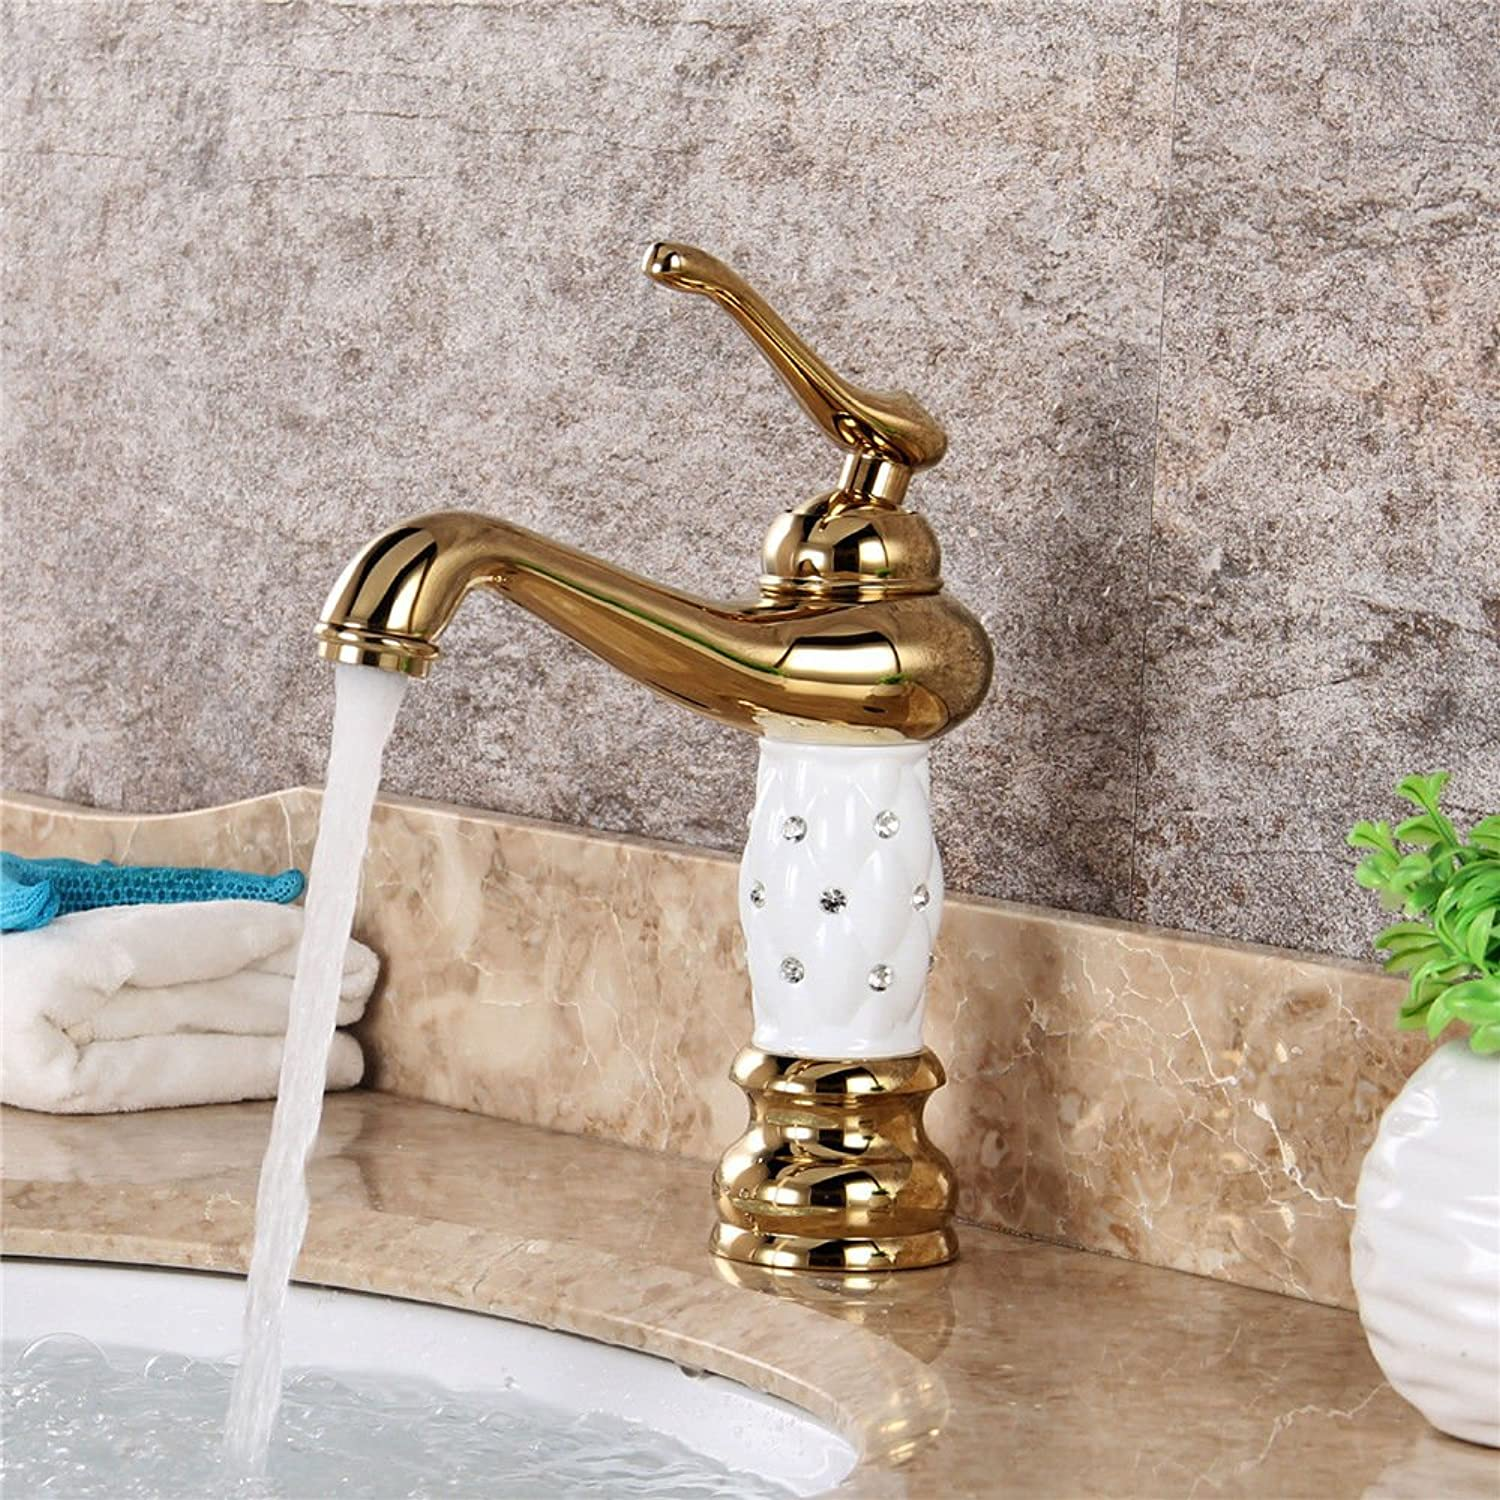 AQMMi Basin Sink Tap Bathroom Bar Faucet gold Plating White Single Lever 1 Hole Brass Single Lever Bathroom Basin Sink Faucet